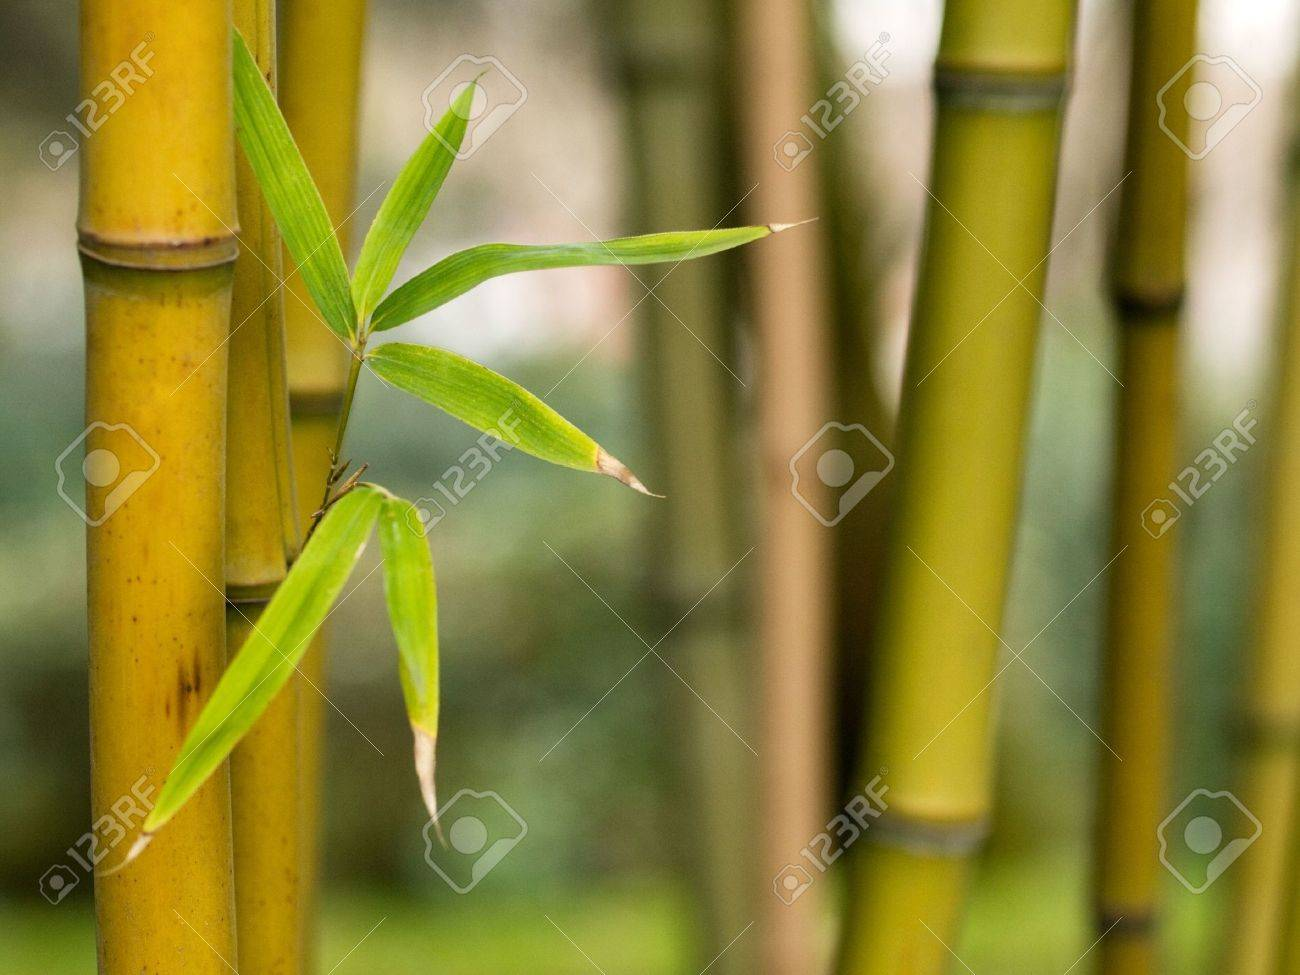 Bamboo shoots with leaves Stock Photo - 4203190